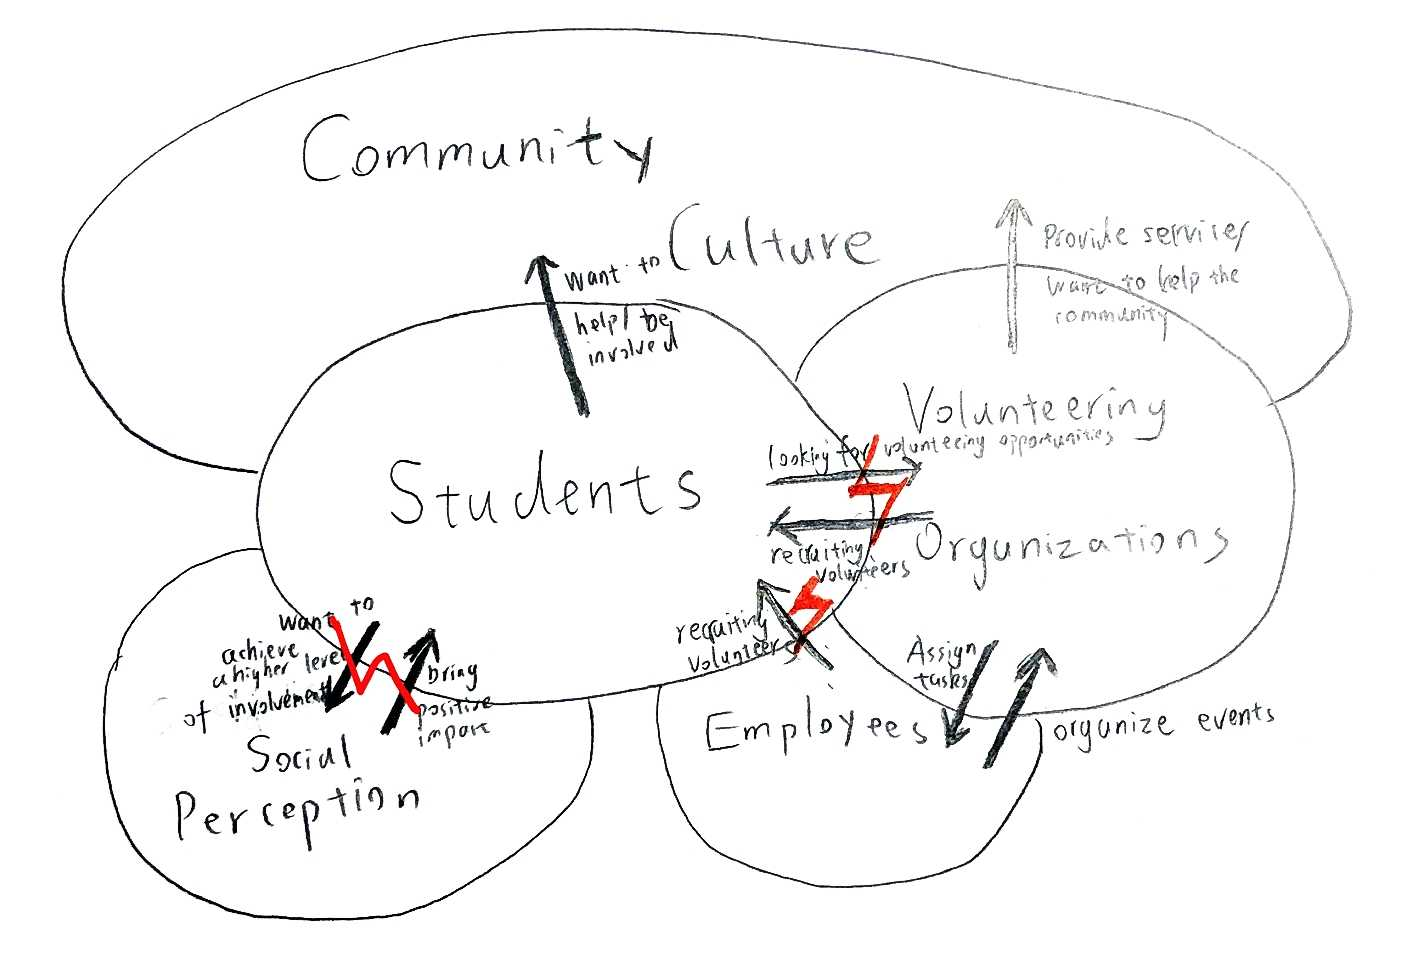 Cultural model for a student interested in volunteering